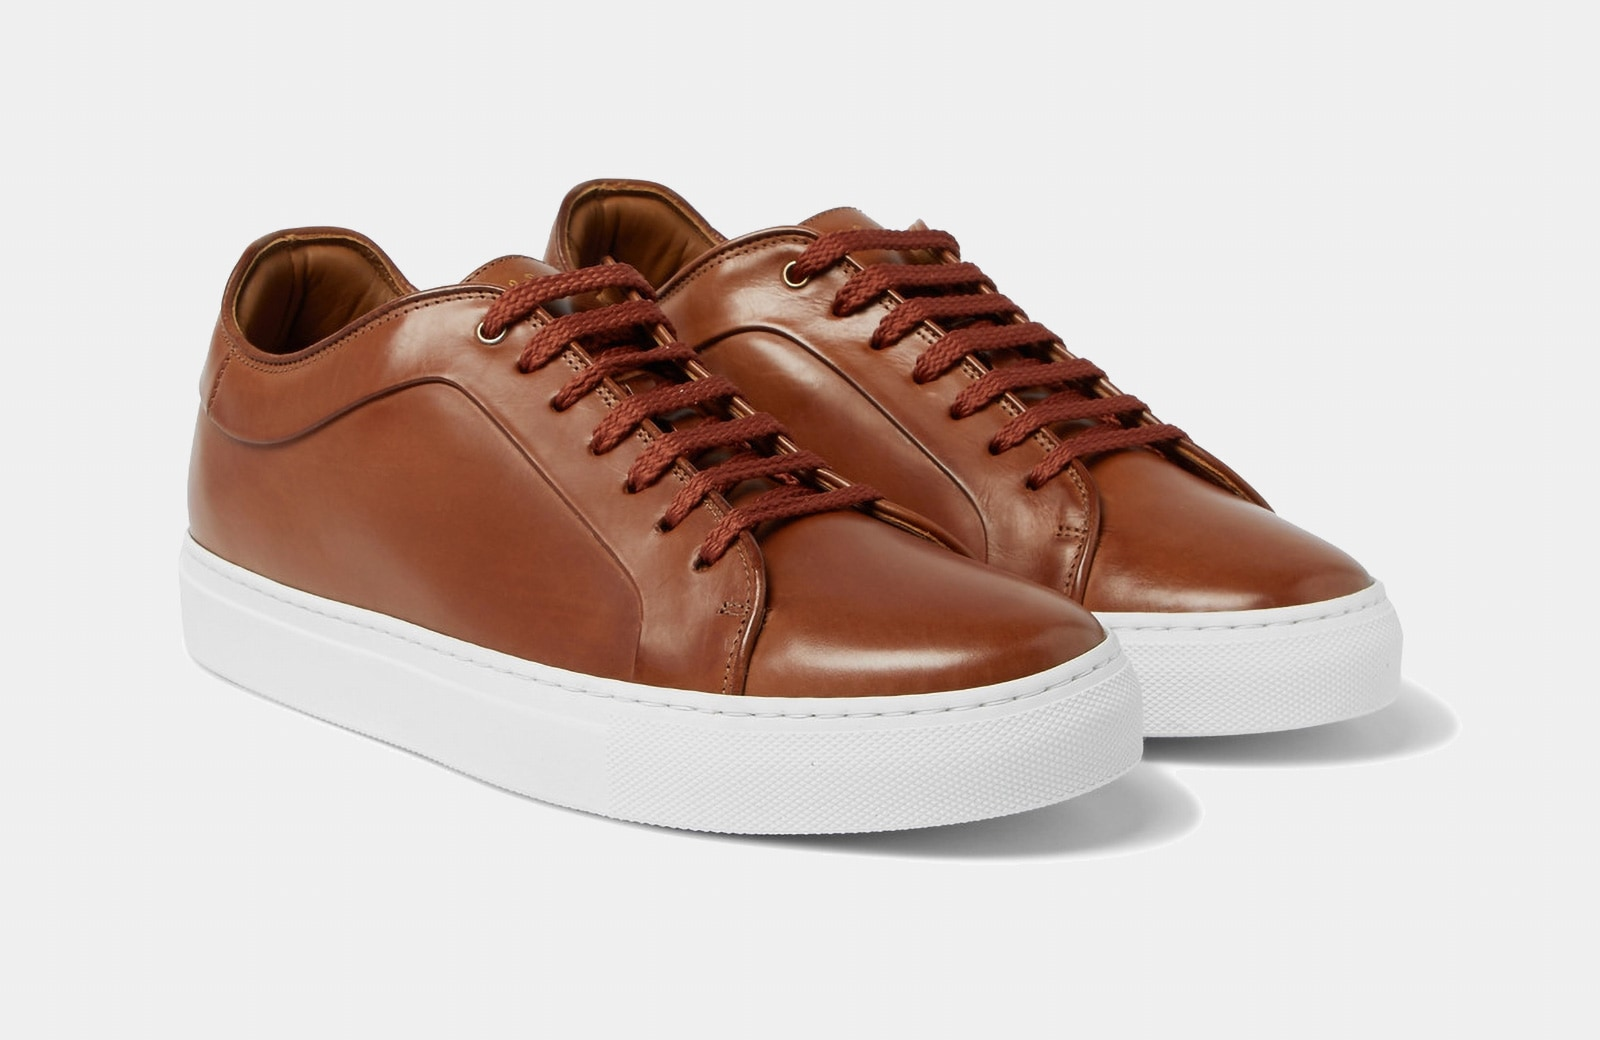 0700c9145062 20 Luxury Sneakers For Men To Master Casual Smart (2019)